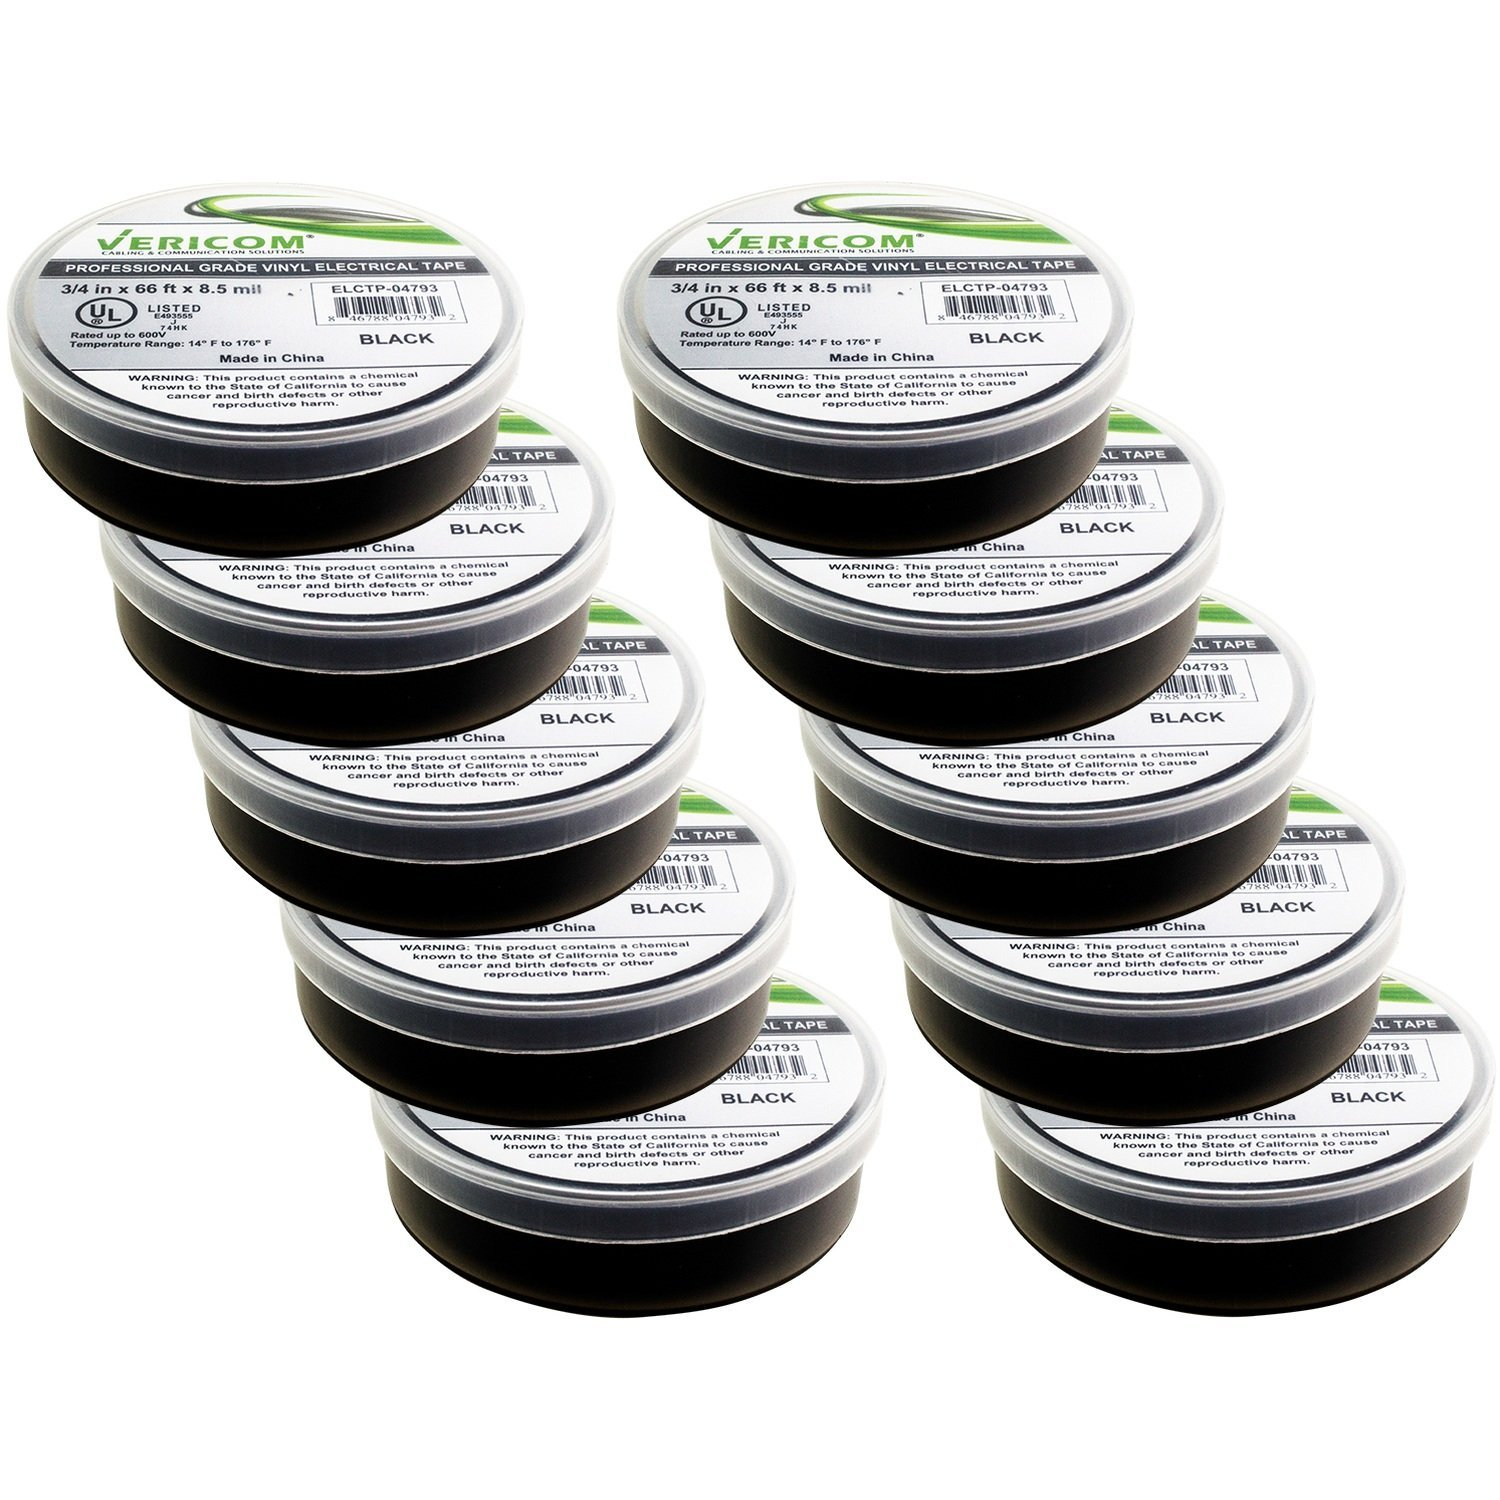 """Black Professional Grade Electrical Tape (3/4"""" x 66 ft, Thickness 8.5 mil) - Heavy Duty - Rated to 176 Degrees & 600 Volts - All-Weather Pressure Sensitive Vinyl (PVC) Tape - 10 PACK"""